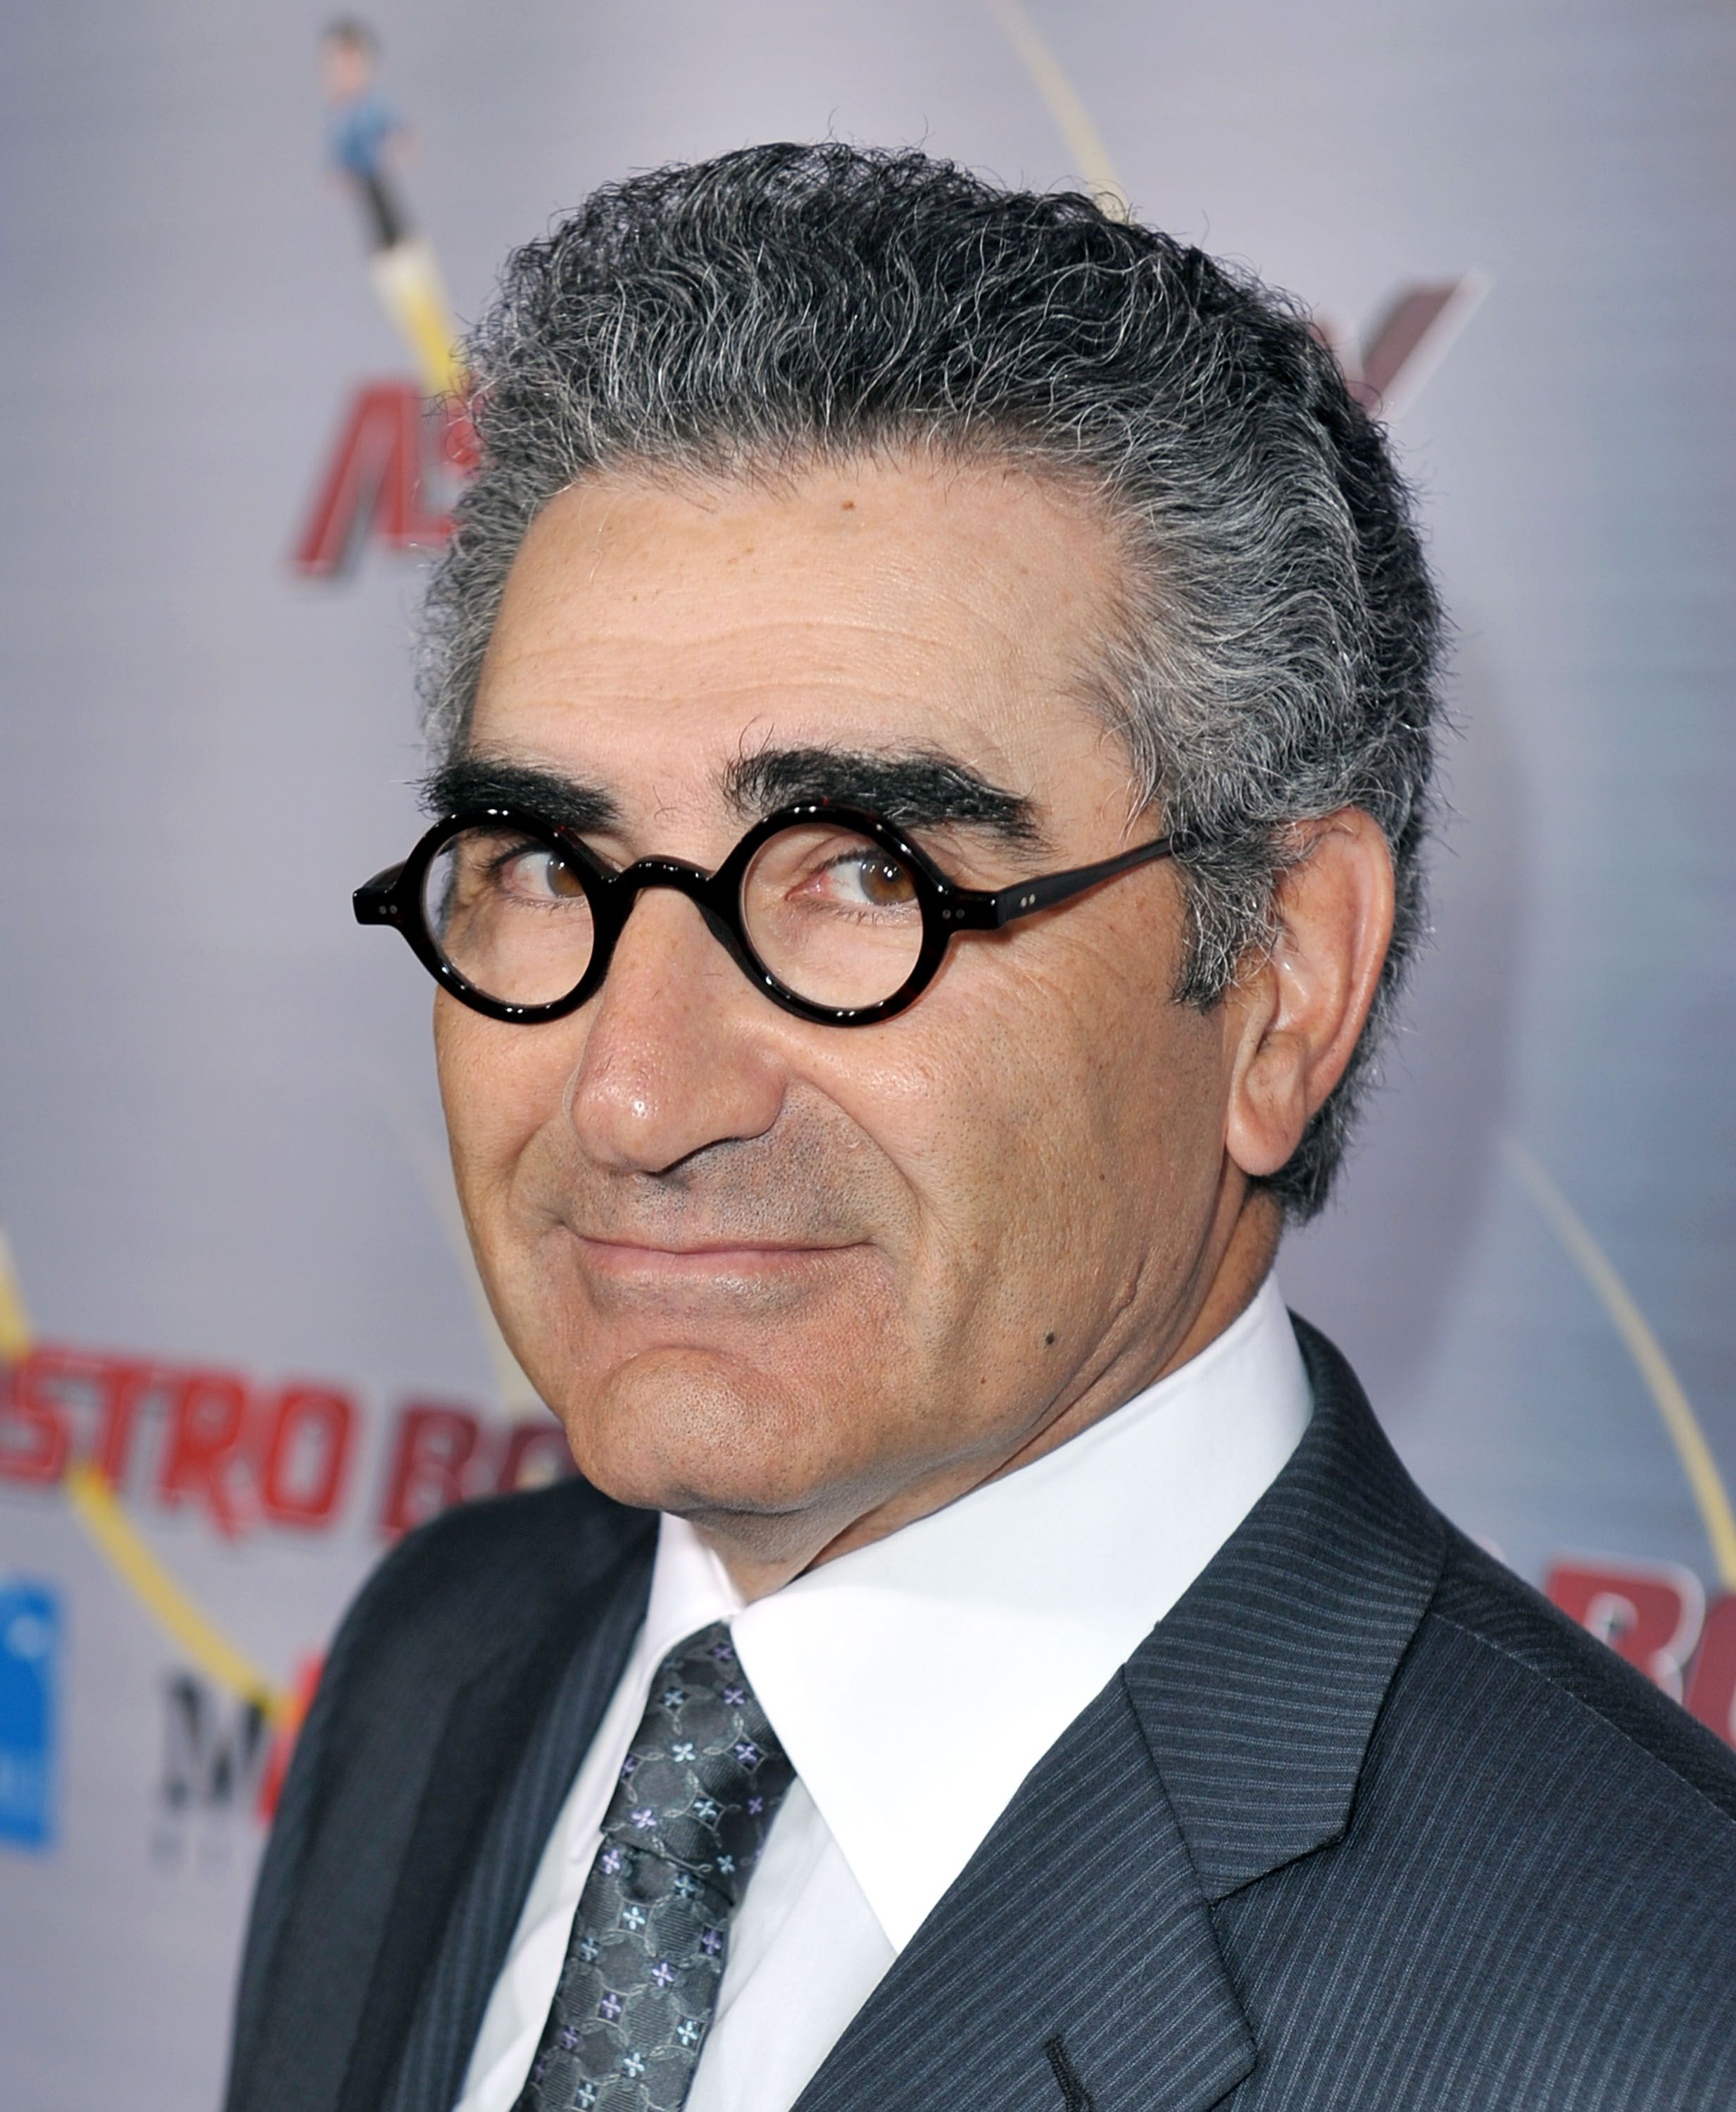 eugene levy eyebrowseugene levy family, eugene levy gif, eugene levy death, eugene levy seth meyers, eugene levy filmography, eugene levy 1999, eugene levy and steve martin, eugene levy son, eugene levy movies, eugene levy net worth, eugene levy wiki, eugene levy young, eugene levy american pie, eugene levy samuel l jackson, eugene levy vacation, eugene levy wikipedia, eugene levy actor, eugene levy daughter, eugene levy eyebrows, eugene levy new show